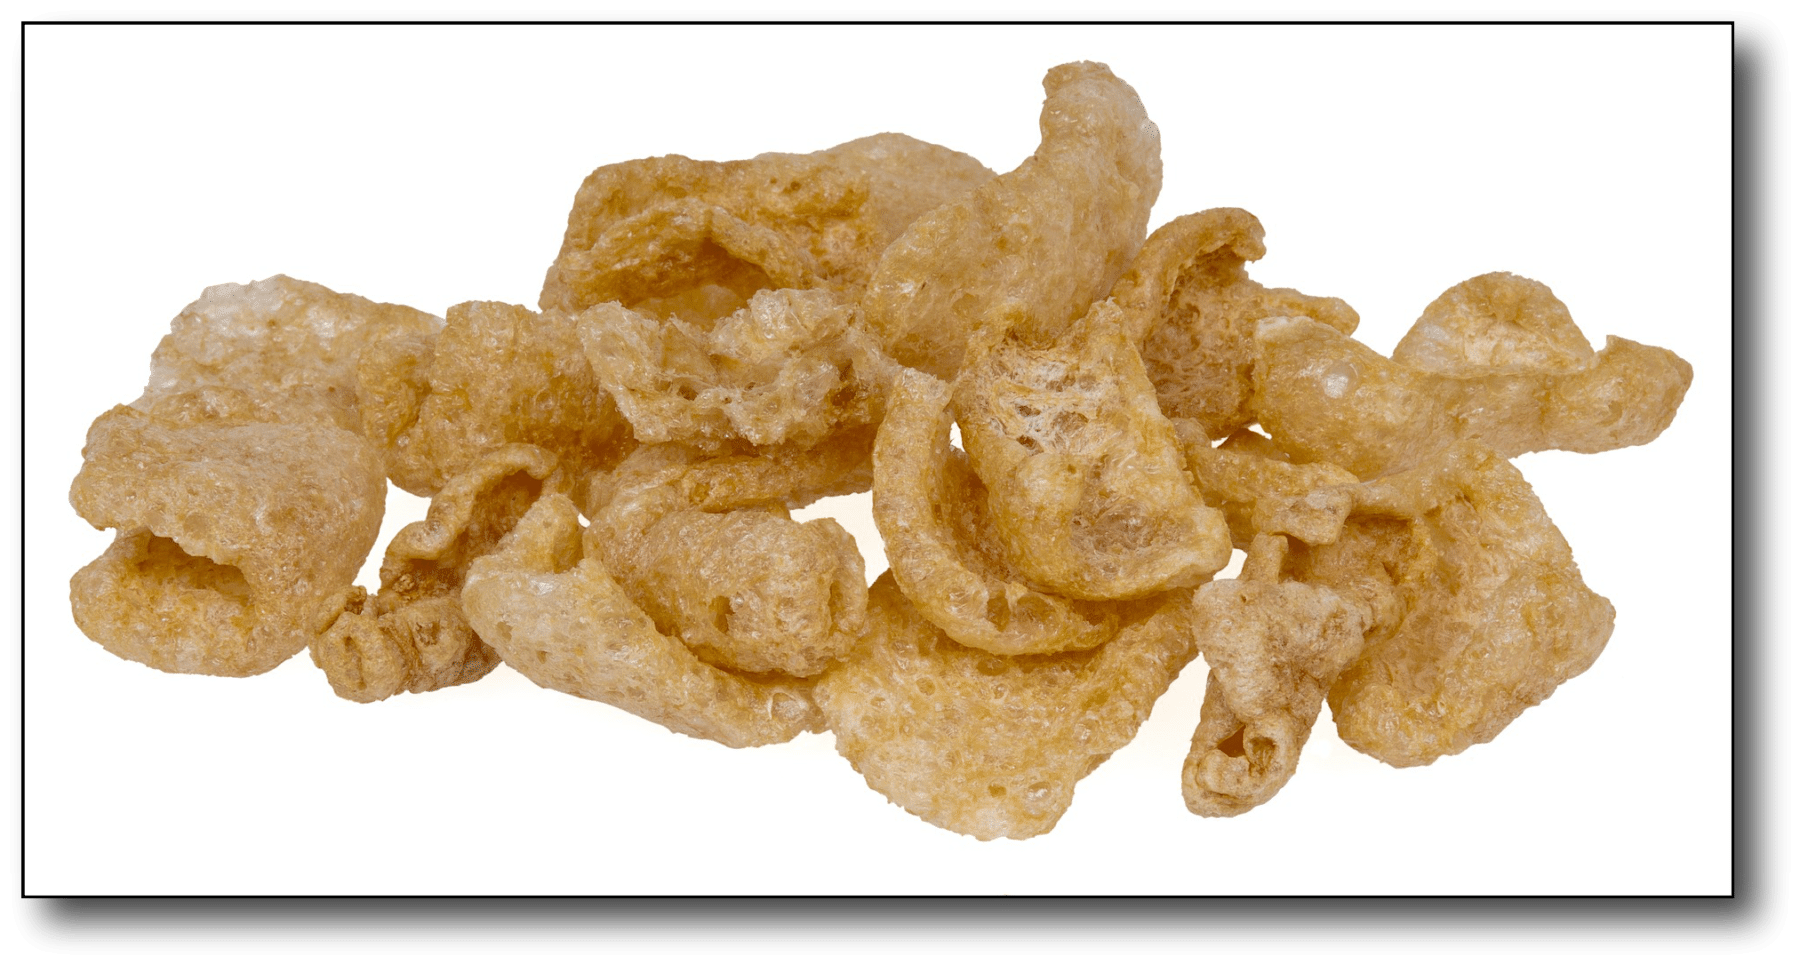 losing weight after 50 - pork rinds